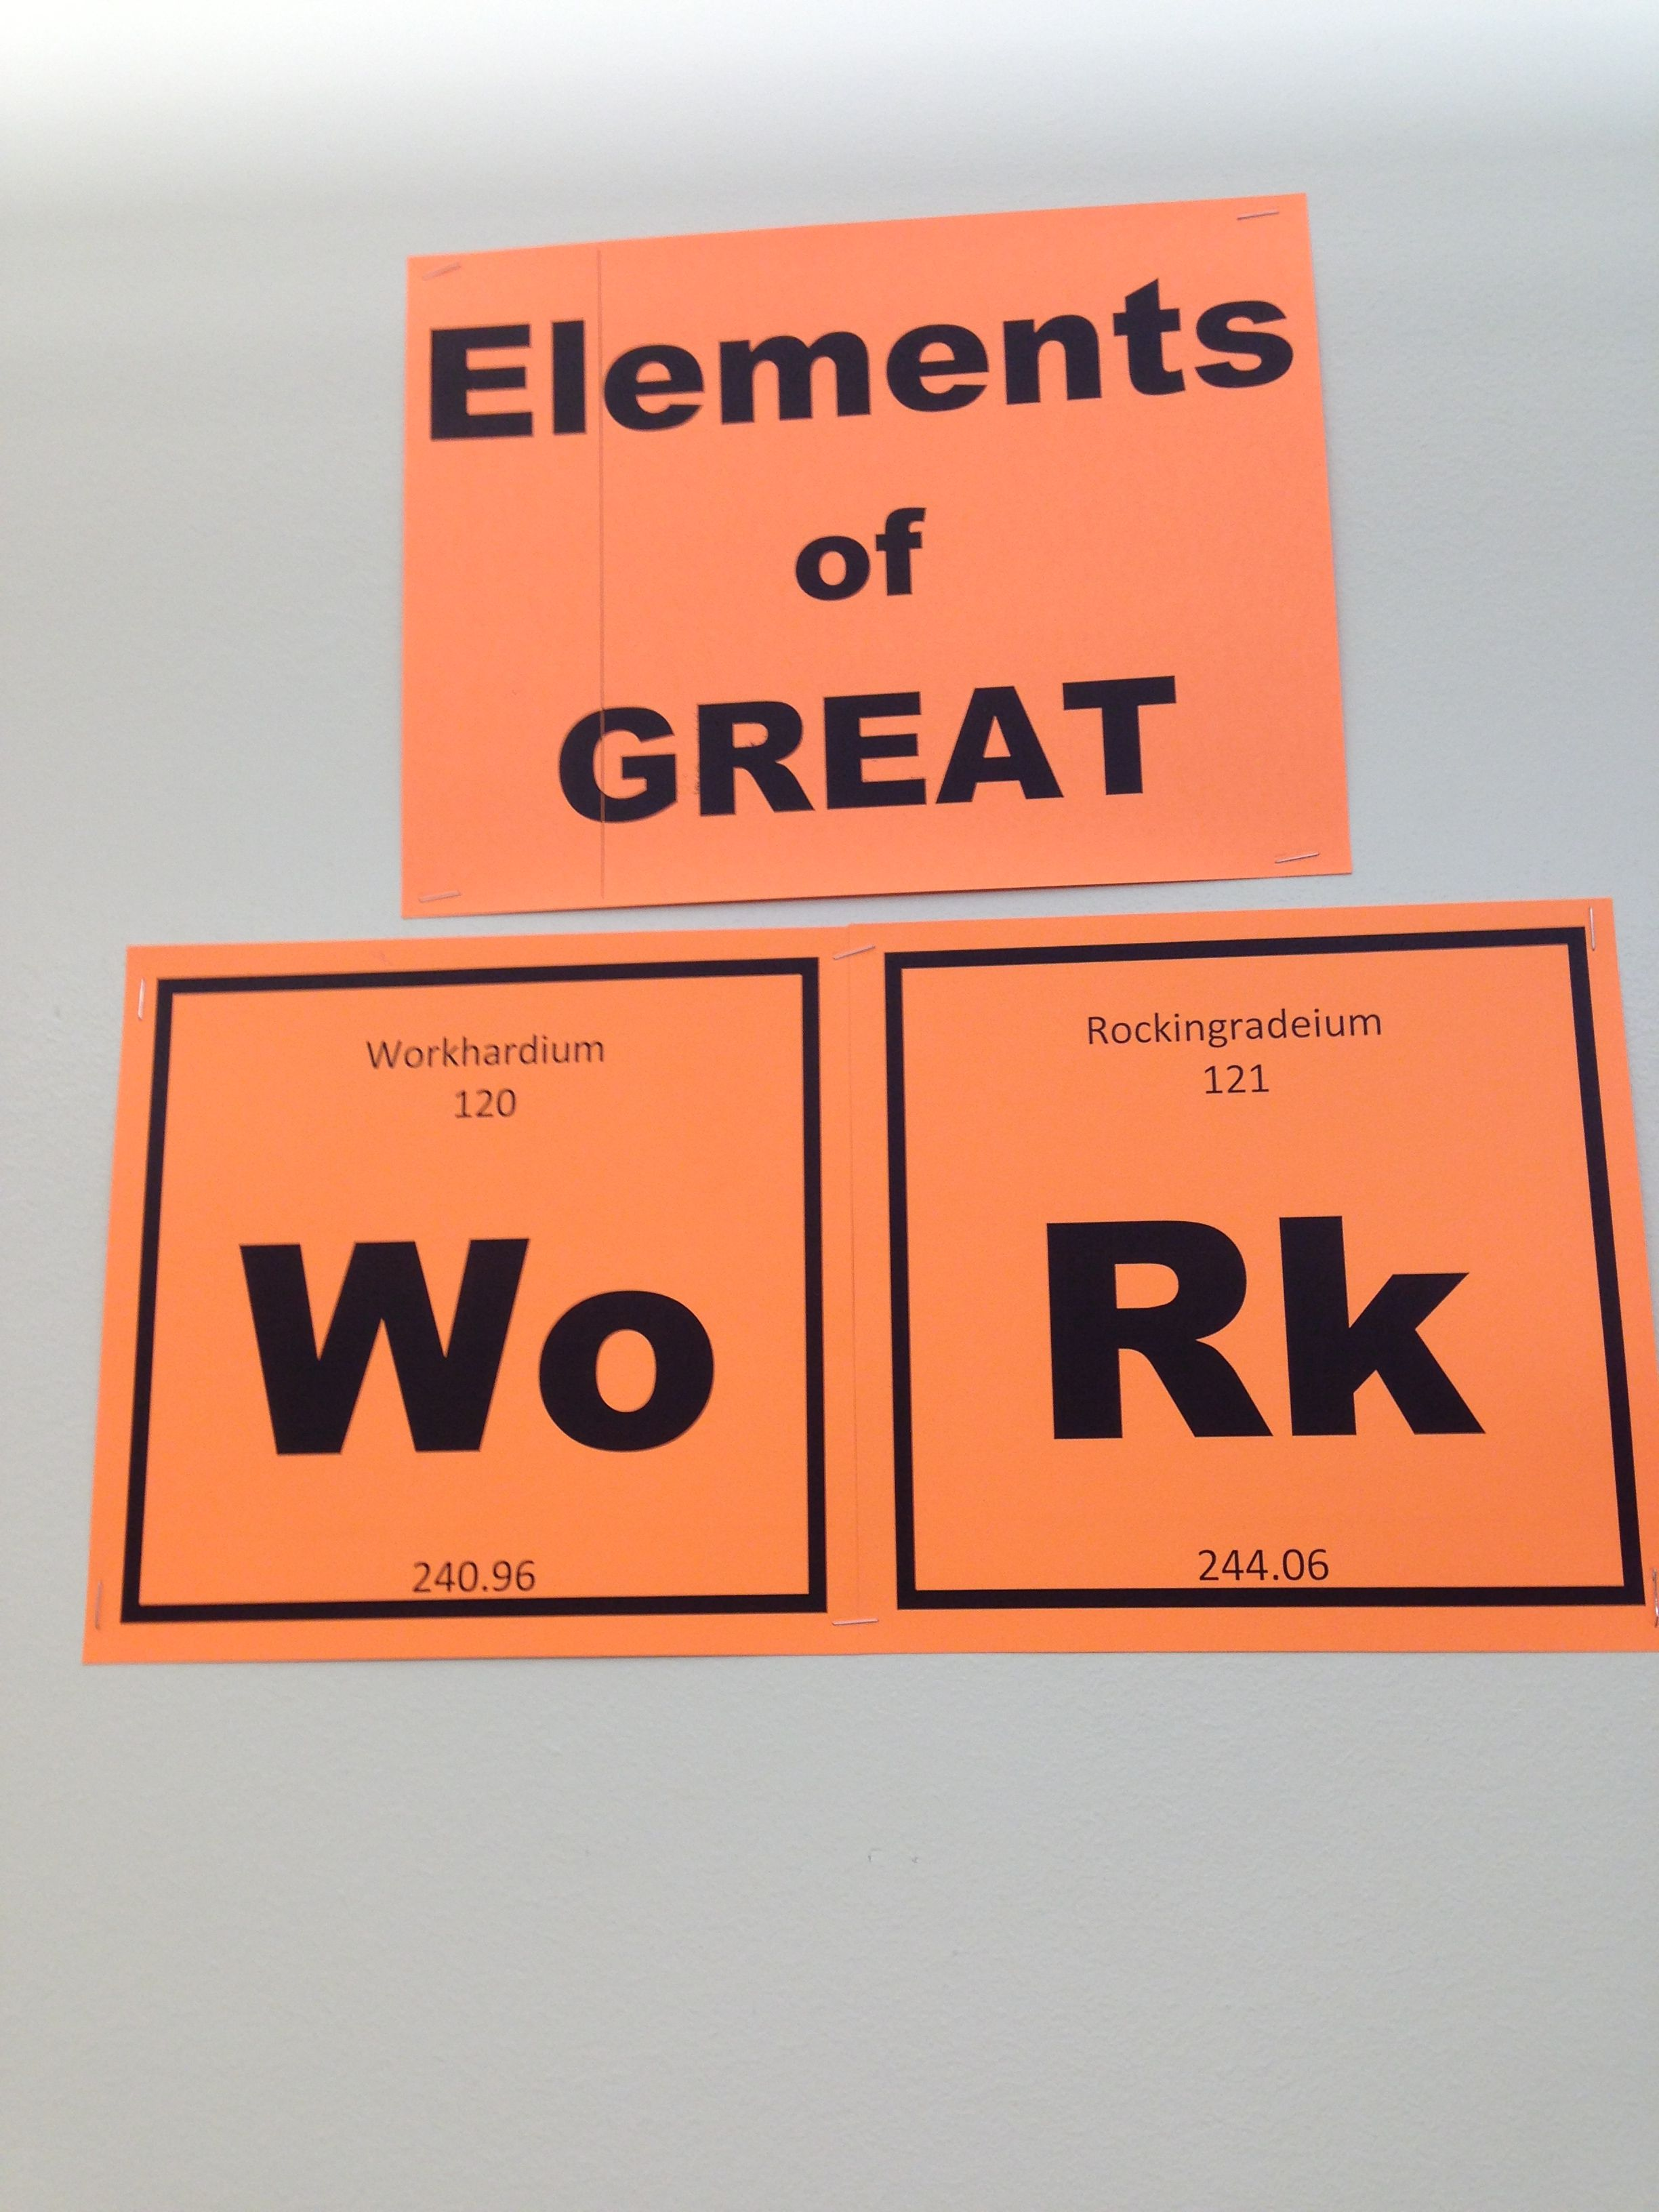 Display title for student work samples in the science classroom